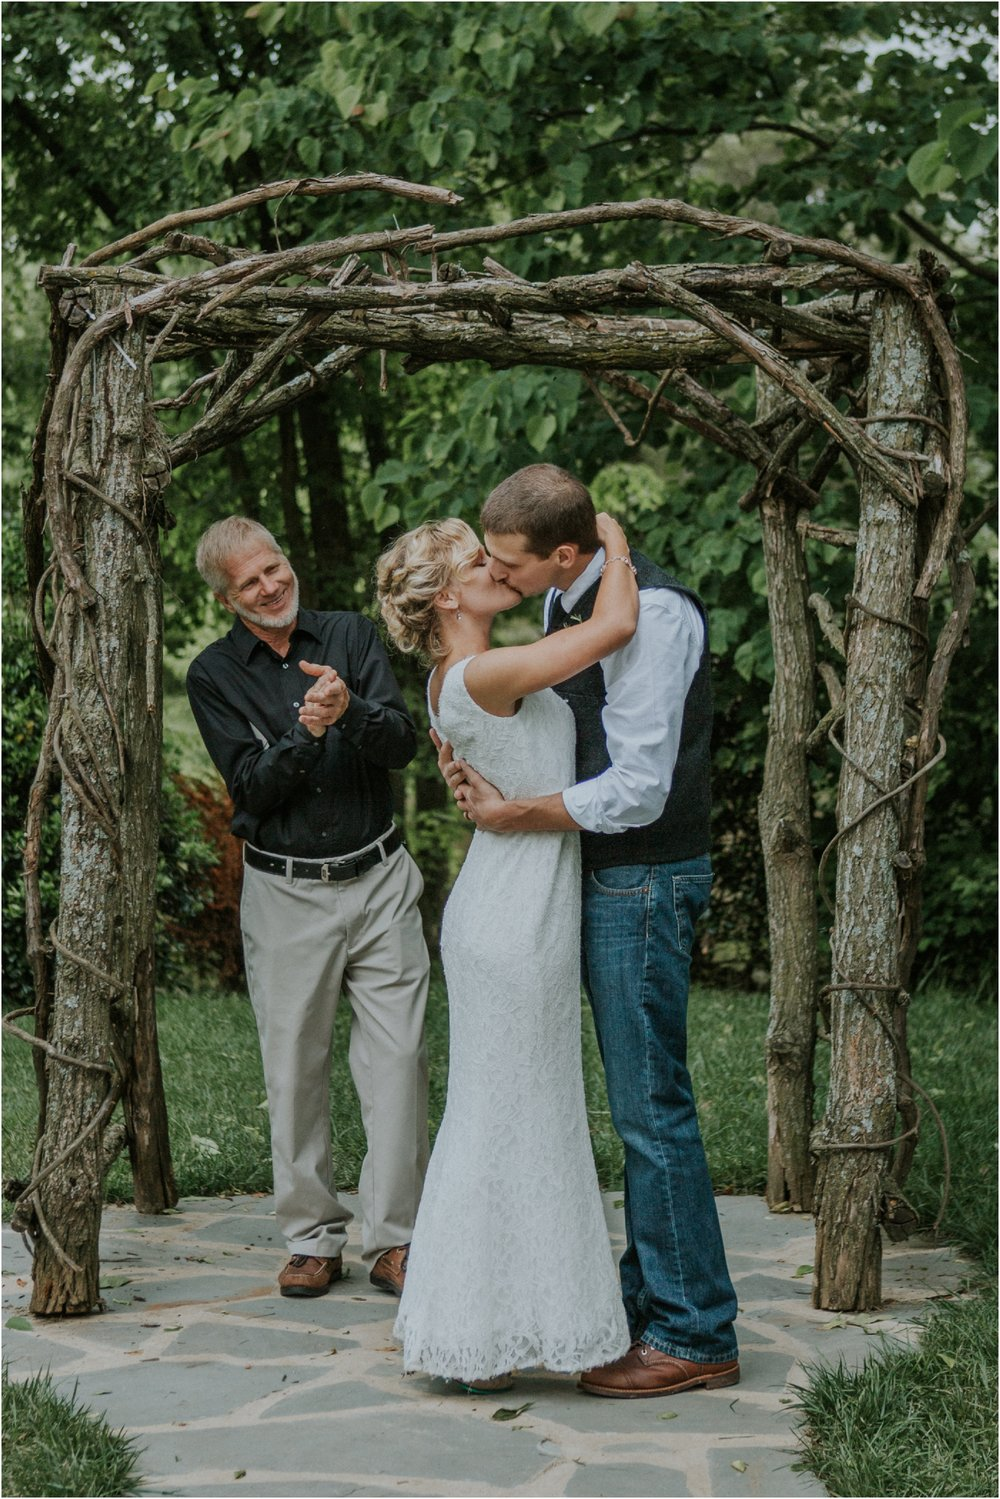 the-millstone-limestone-rustic-intimate-outdoors-backyard-wedding-wildflowers-tennessee_0094.jpg